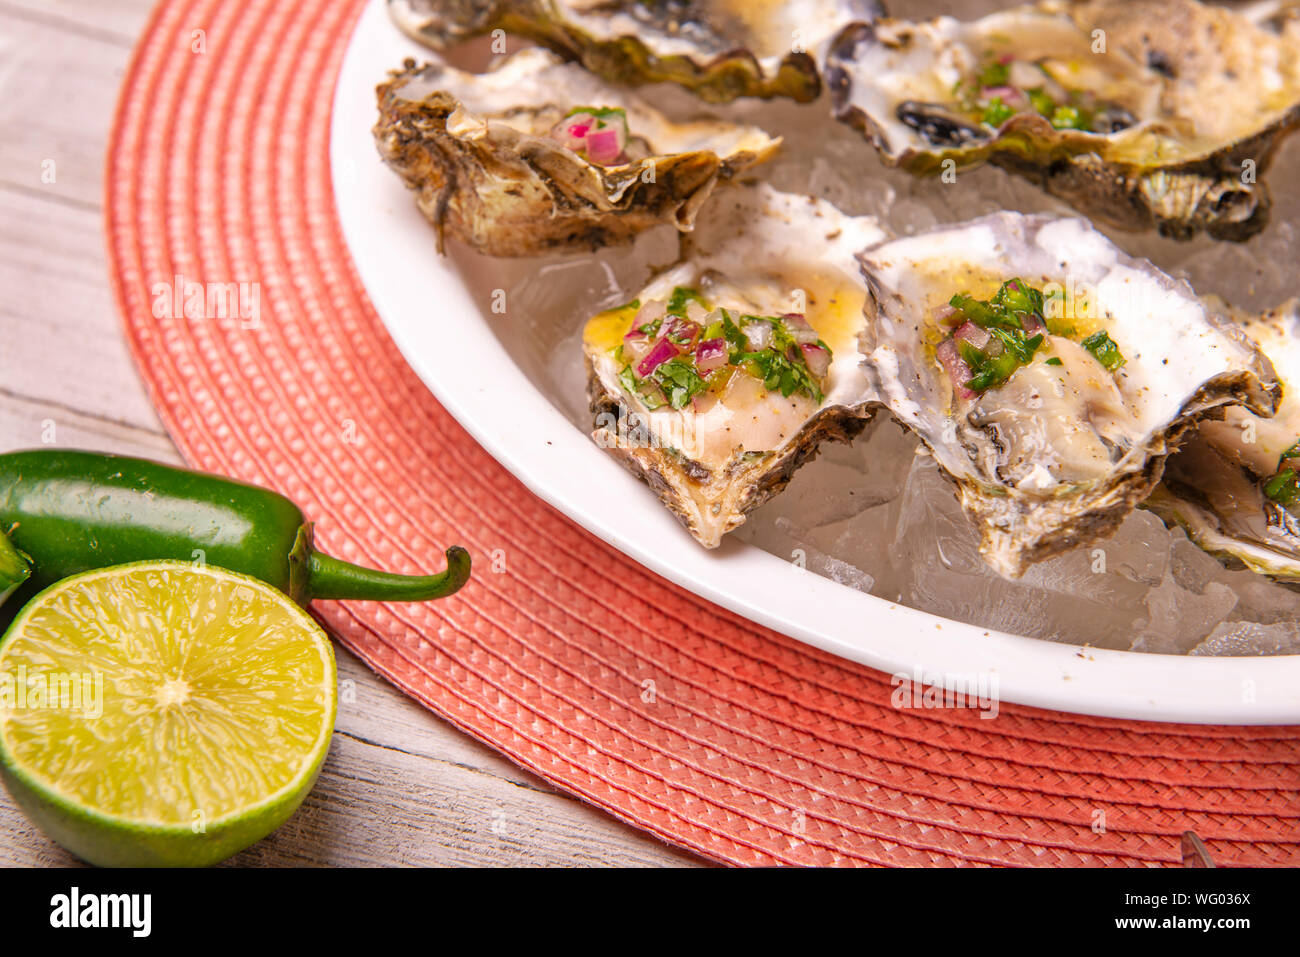 Detail of a plate with fresh shucked oysters with jalapeno & lemon mignonette over wood background Stock Photo